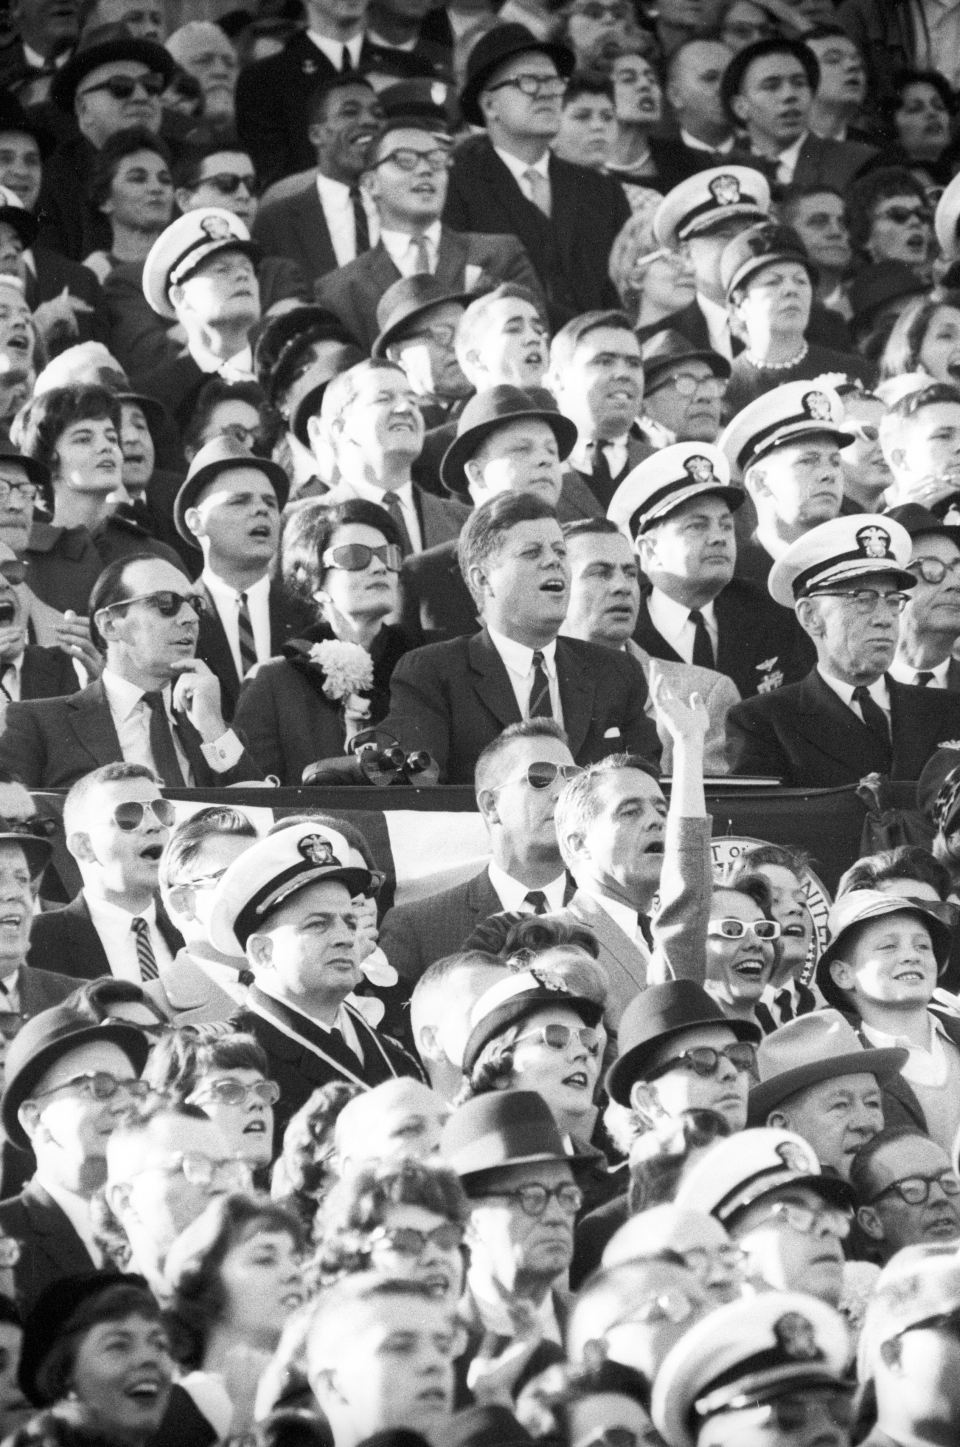 President John F. Kennedy at Army - Navy Game